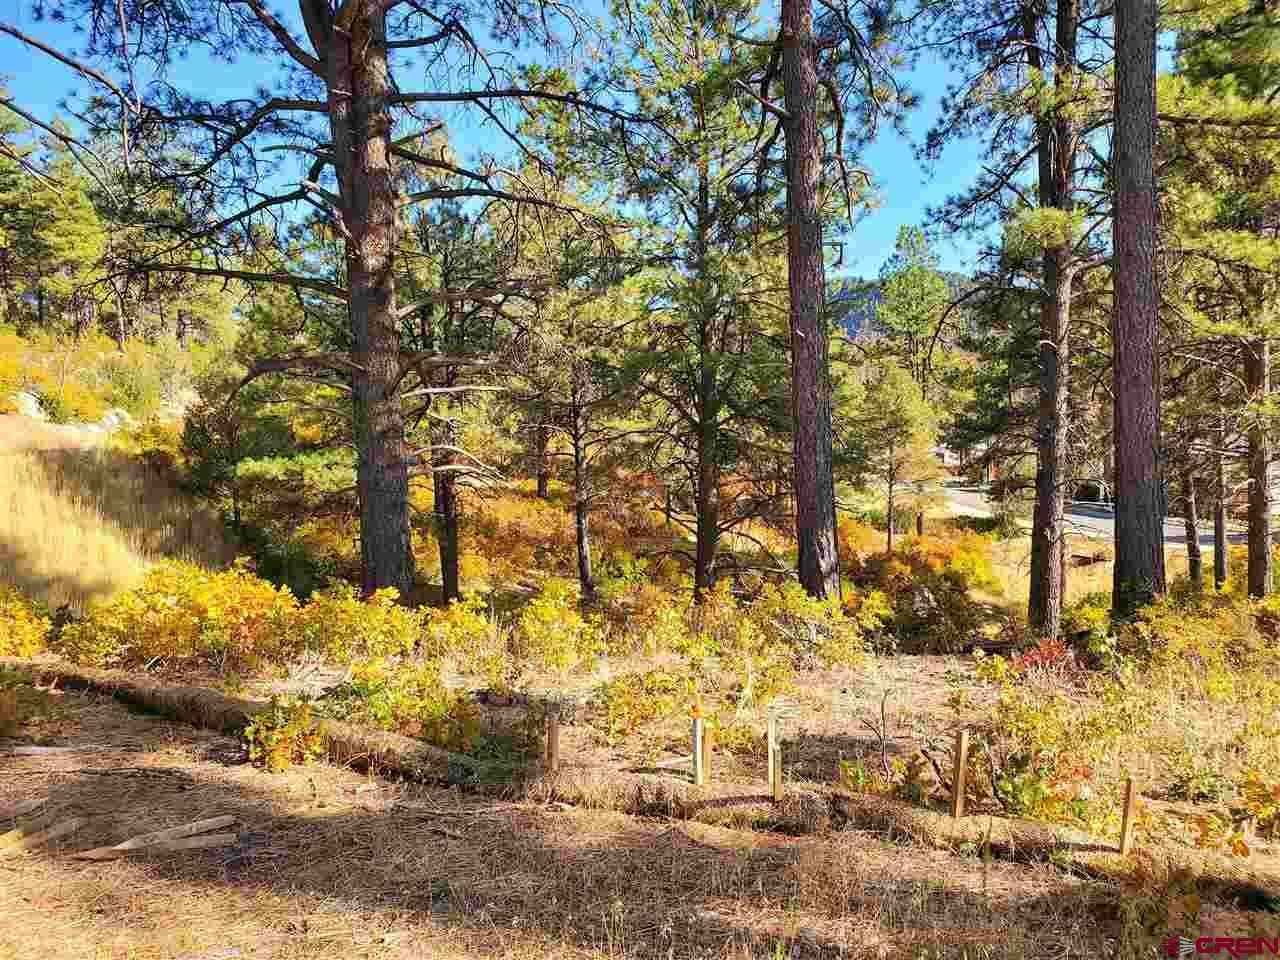 Photo of (Lot 58) TBD Wild Iris Avenue, Durango, CO 81301 (MLS # 752612)